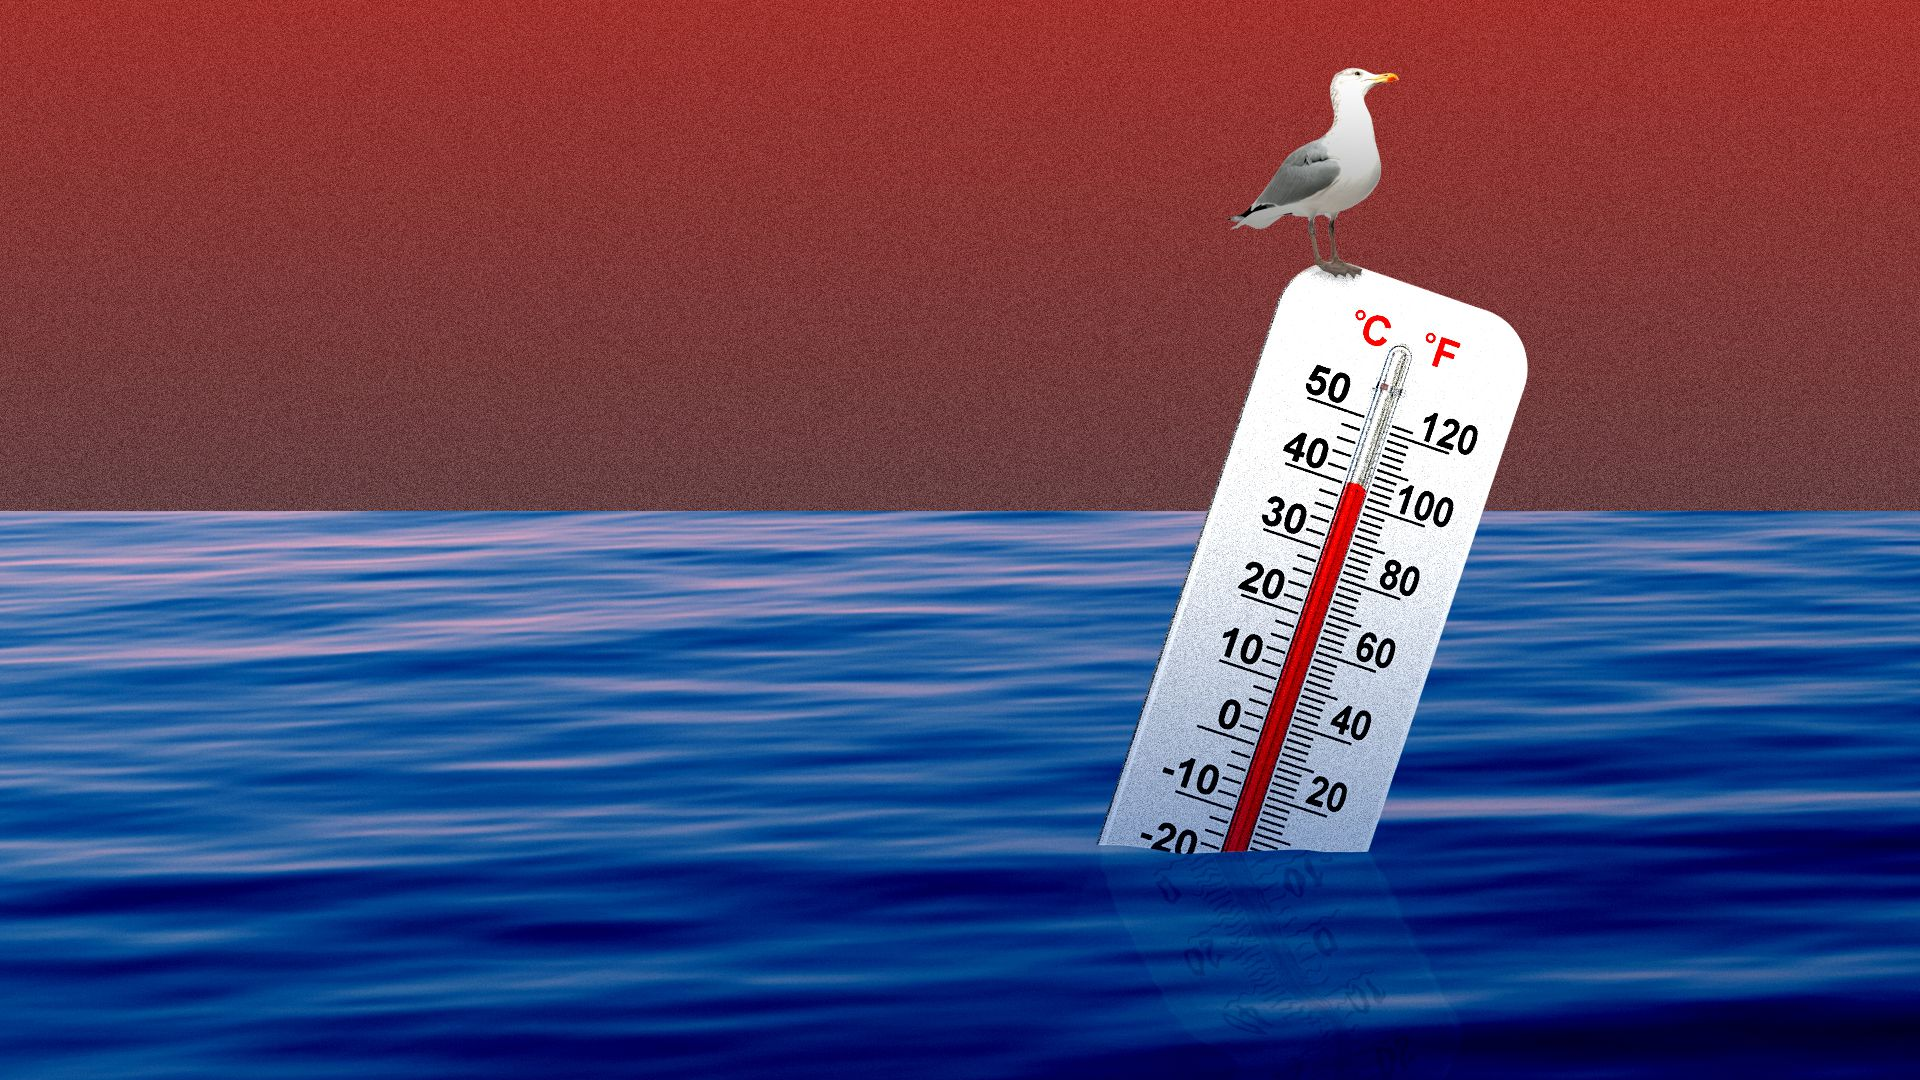 Illustration of thermometer floating in the ocean.